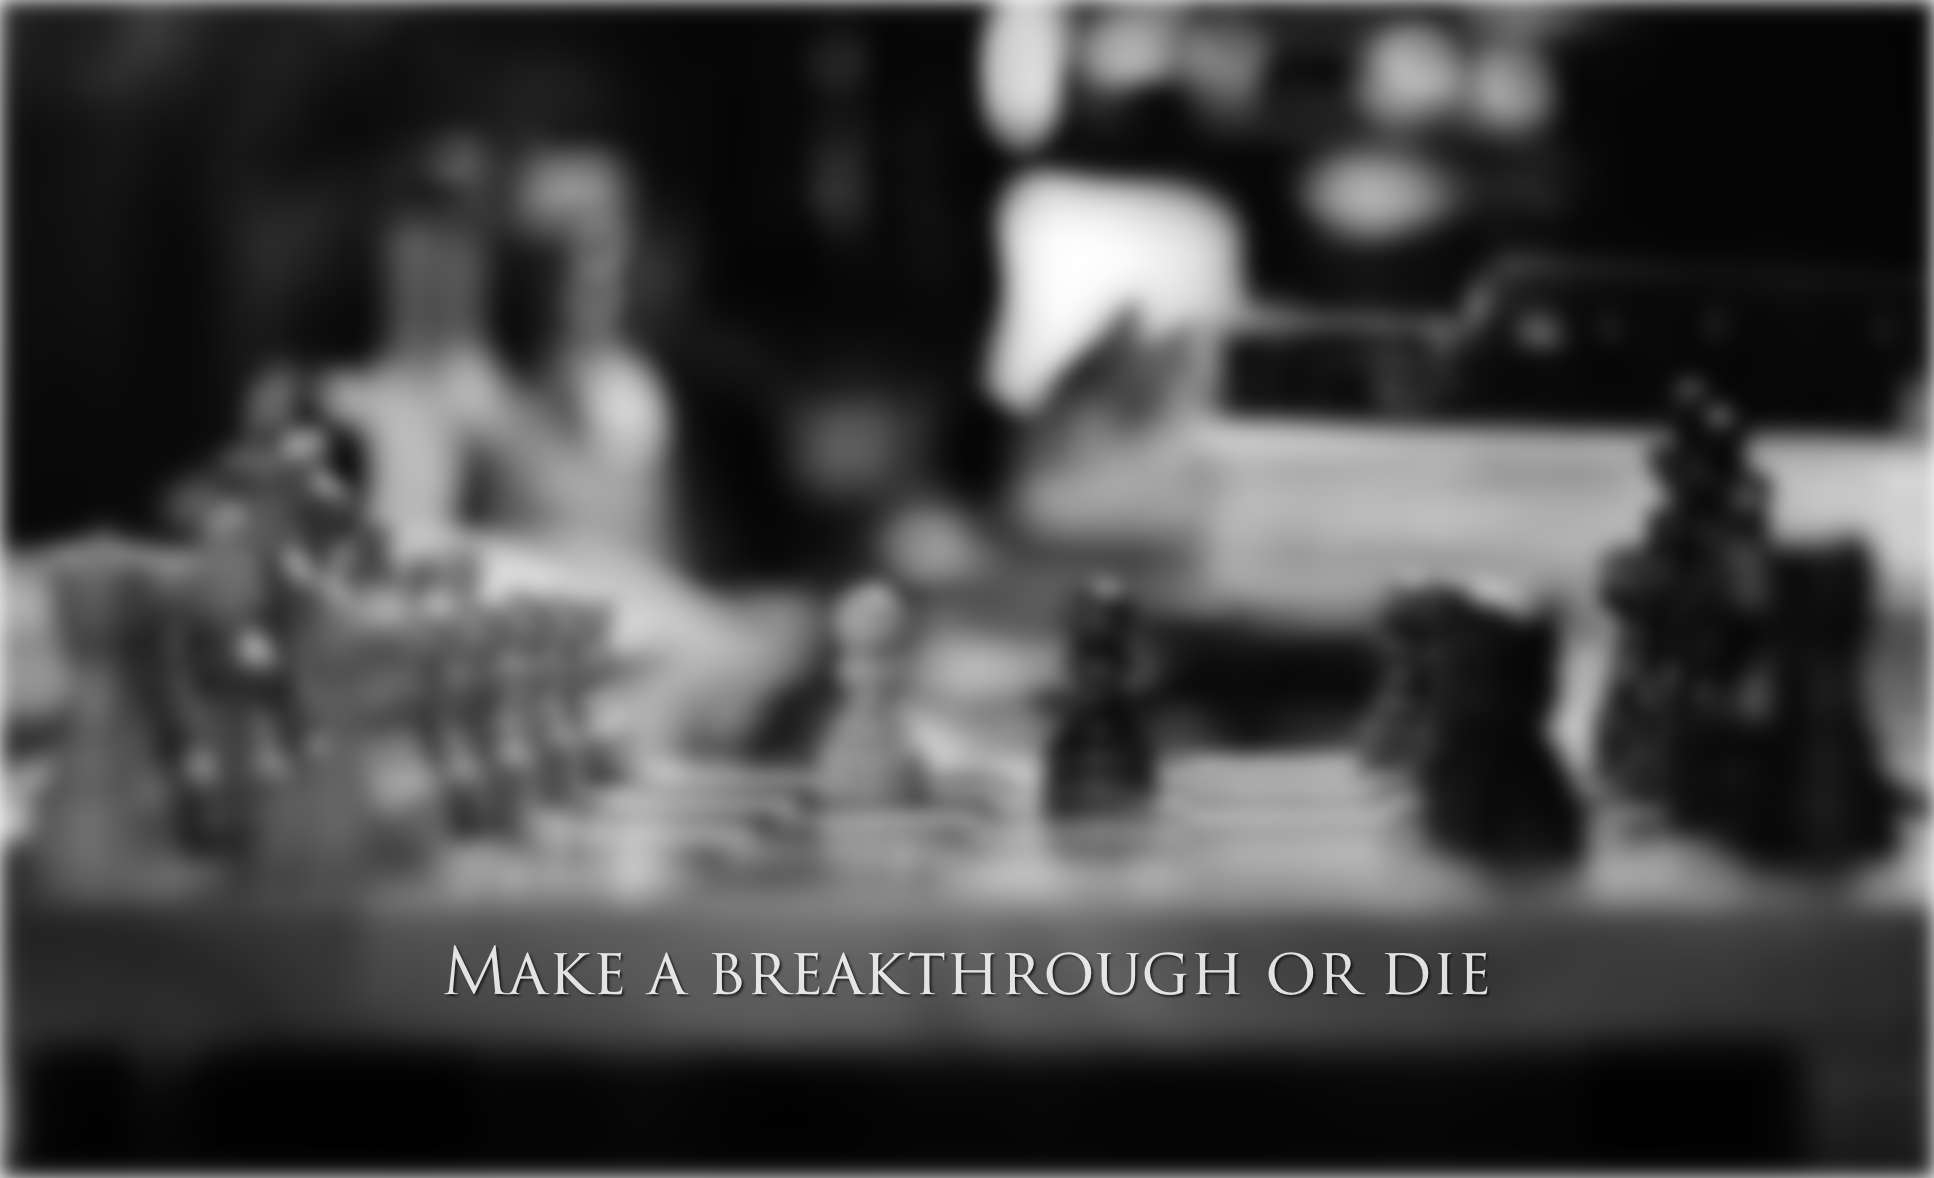 Make a breakthrough or die